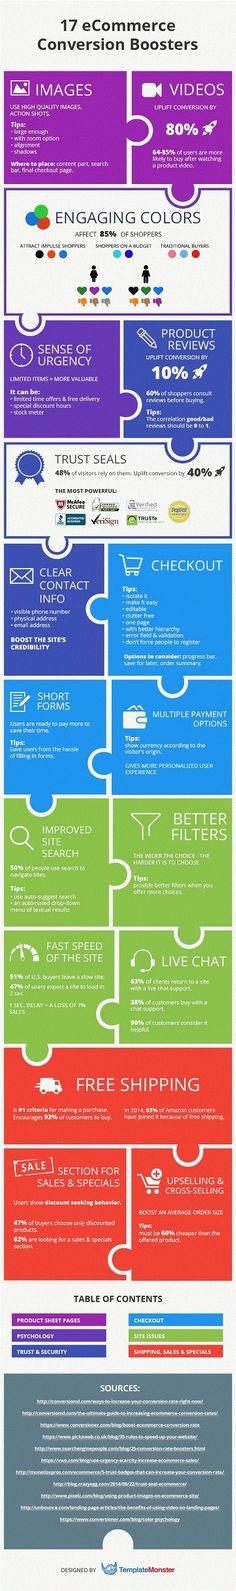 Sales - 17 Ways to Boost Your E-Commerce Conversion Rates [Infographic] : MarketingProfs Article